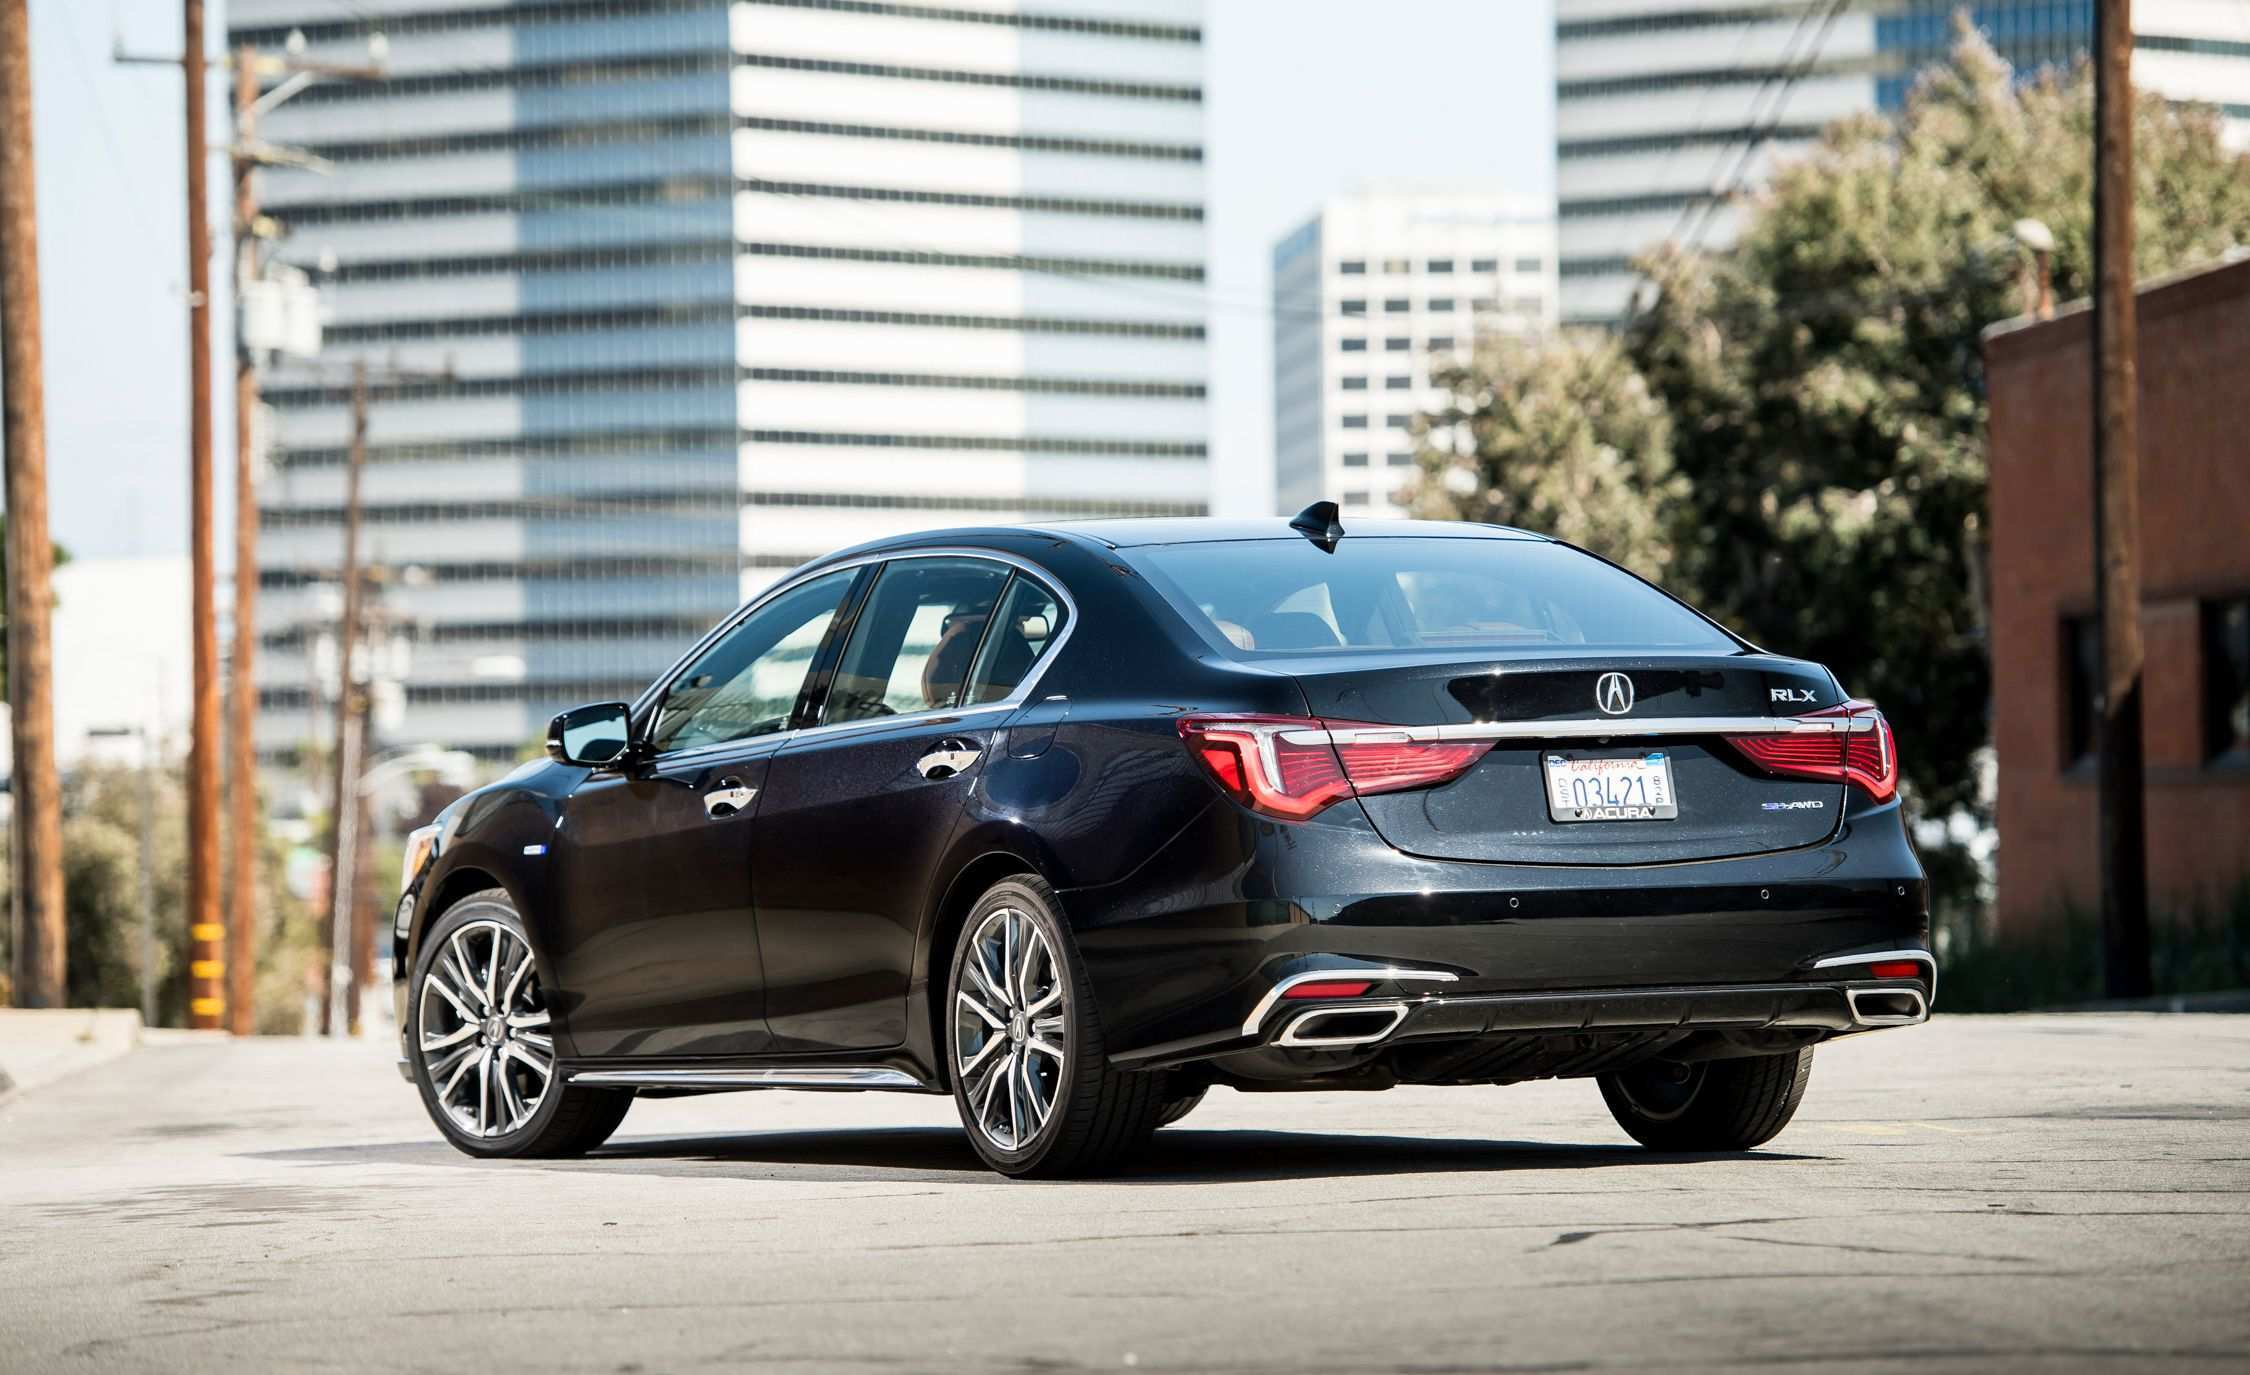 79 Concept of New 2019 Acura Rlx Sport Hybrid Redesign Price And Review Spy Shoot with New 2019 Acura Rlx Sport Hybrid Redesign Price And Review